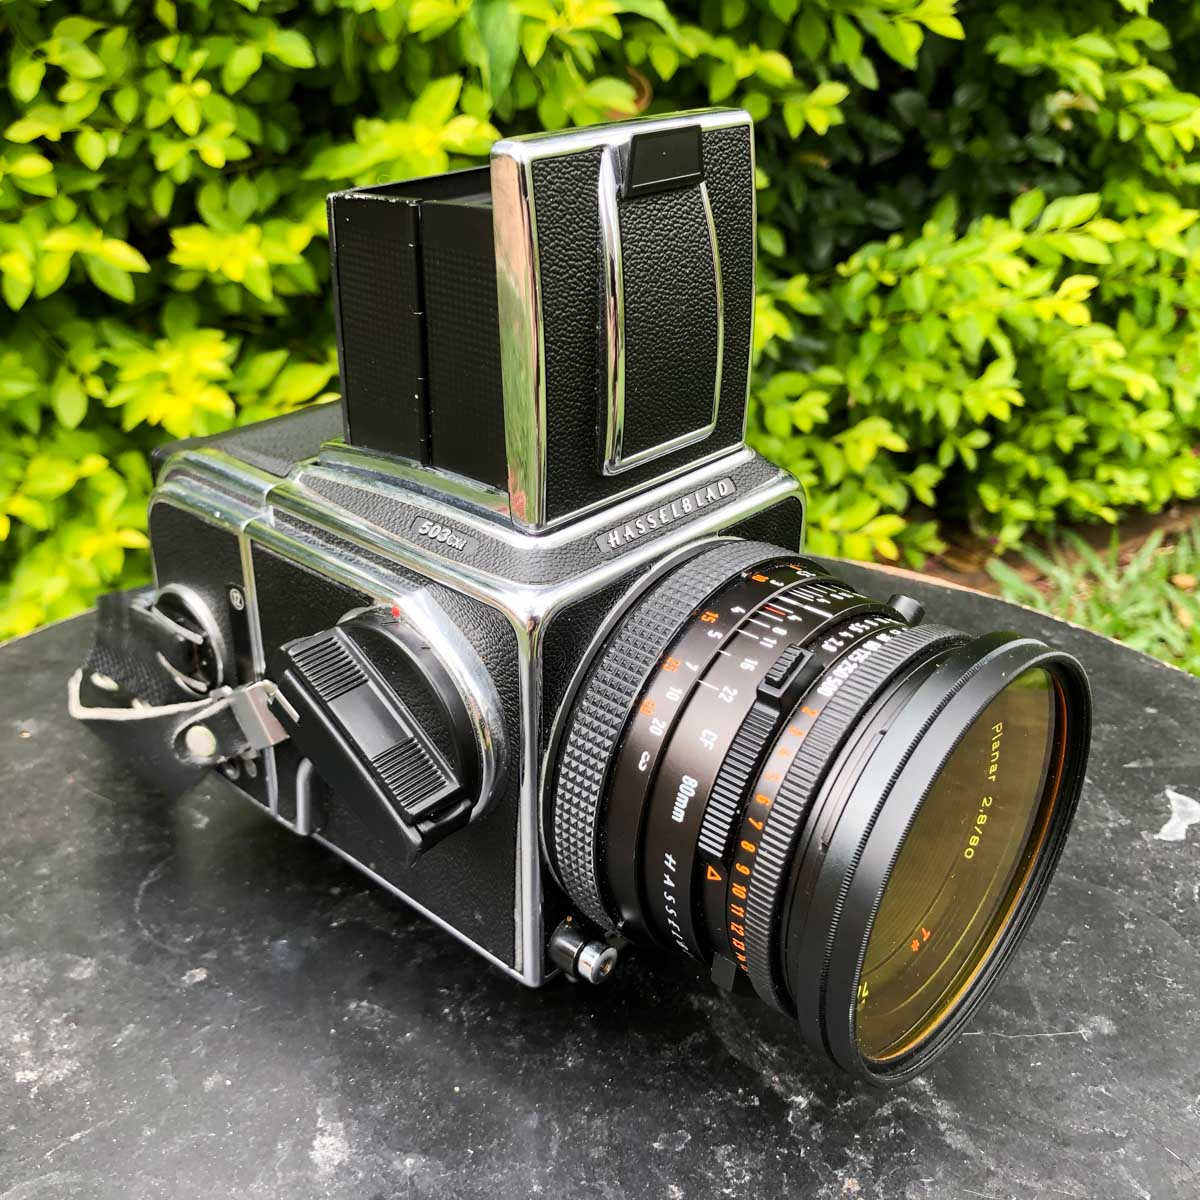 My Hasselblad 503 CXi and Carl Zeiss Planar CF 80mm f:2.8 with Tiffen Y(2K) filter